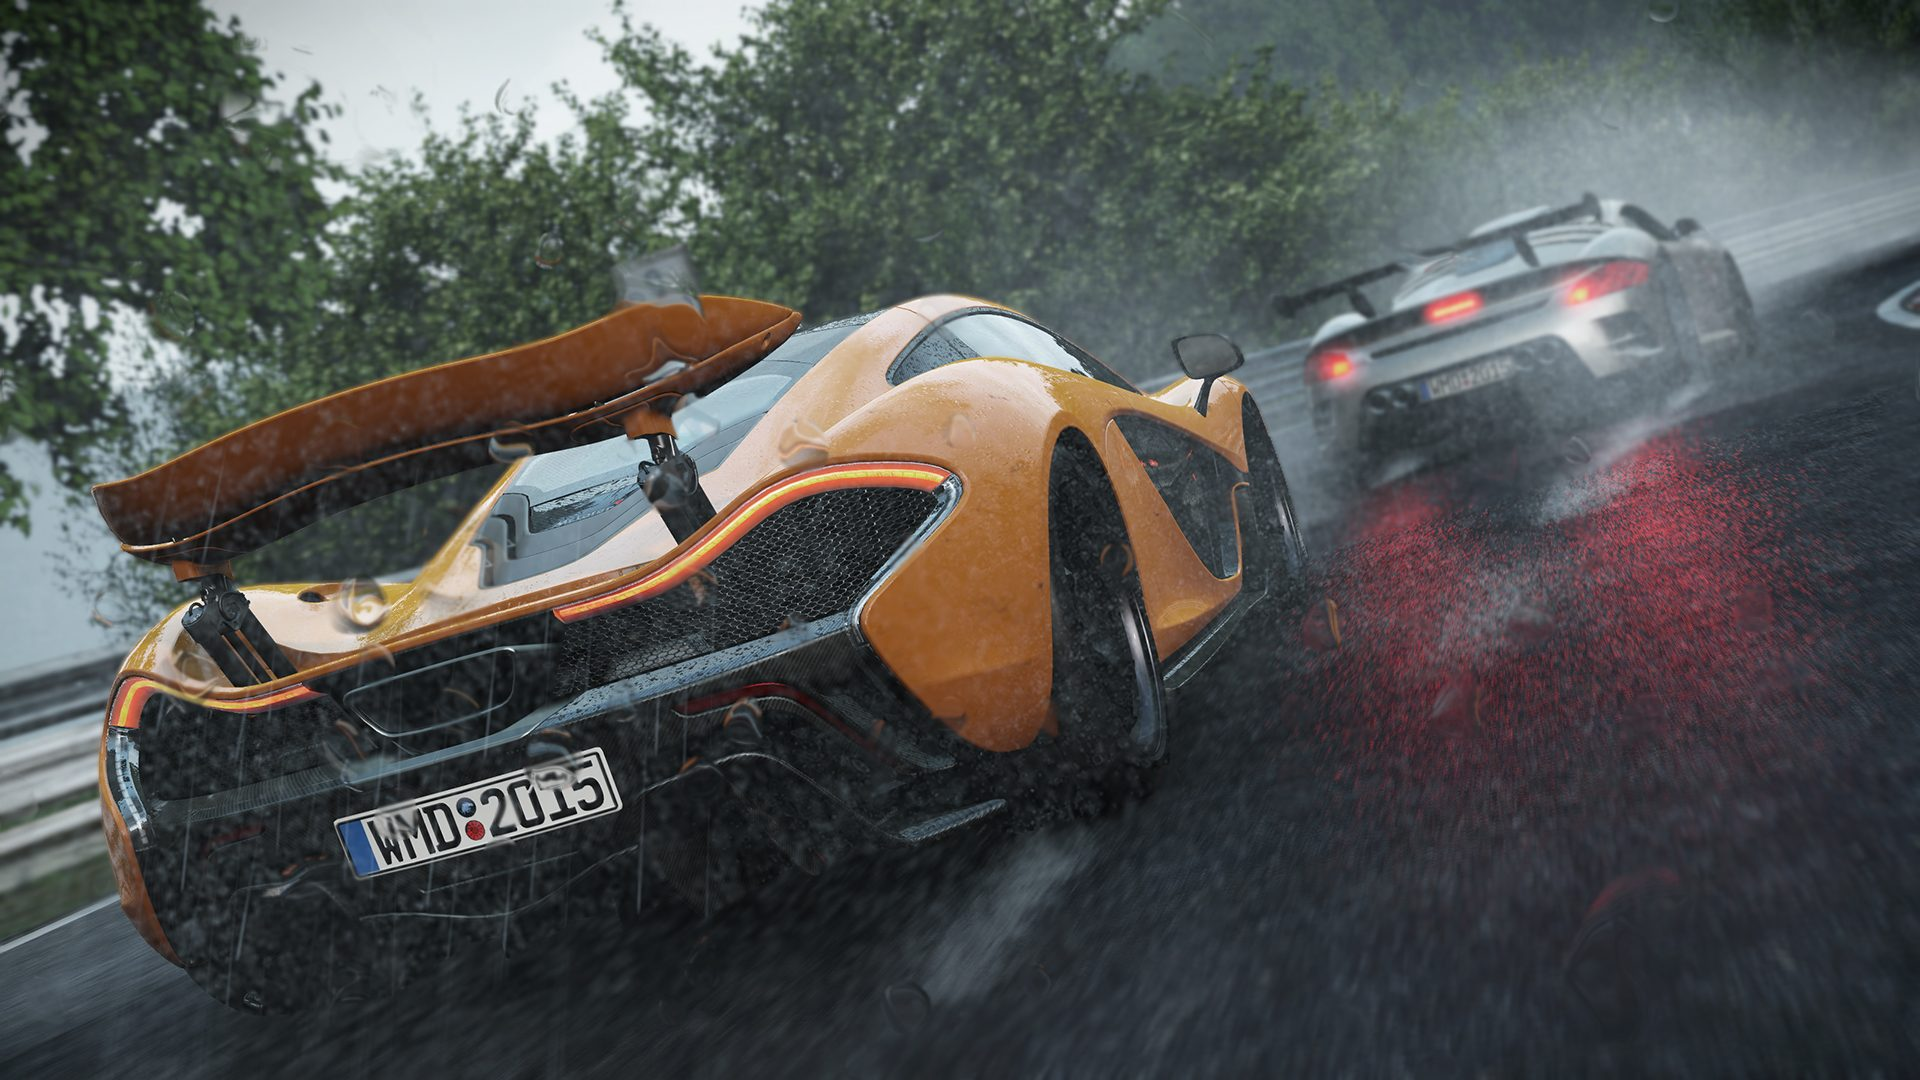 Daily Deal: Project Cars is 66% Off On Steam (EXTREMELY LIMITED)